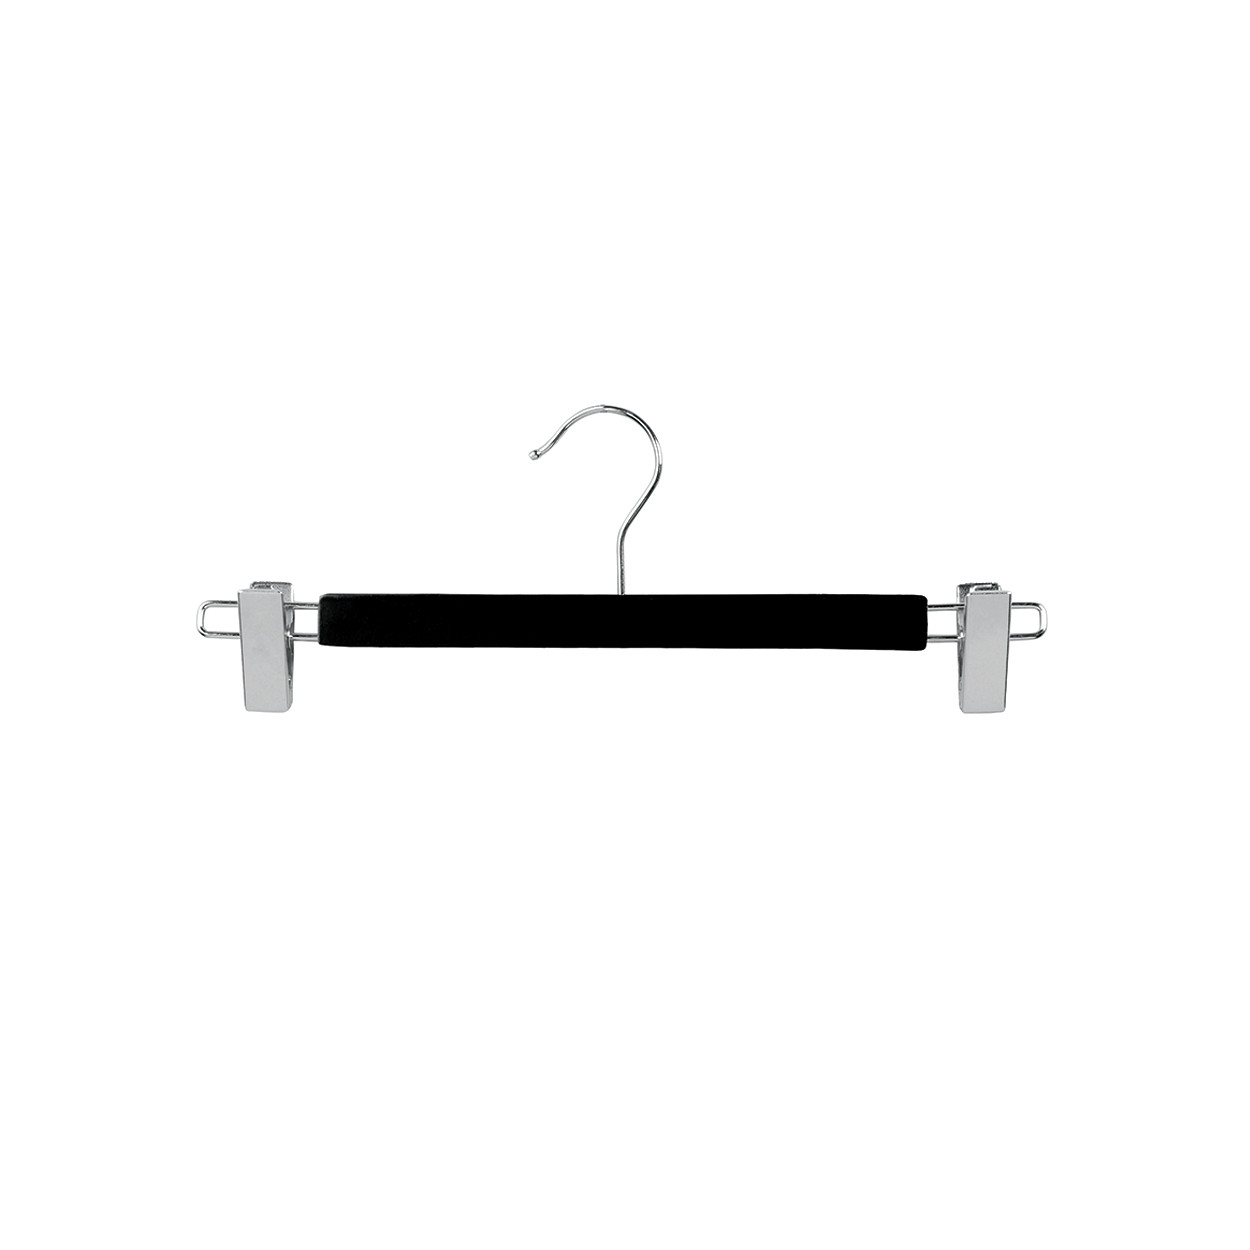 355cm Black Wooden Pant Hanger With Clips 12mm Thick Sold In 2550100